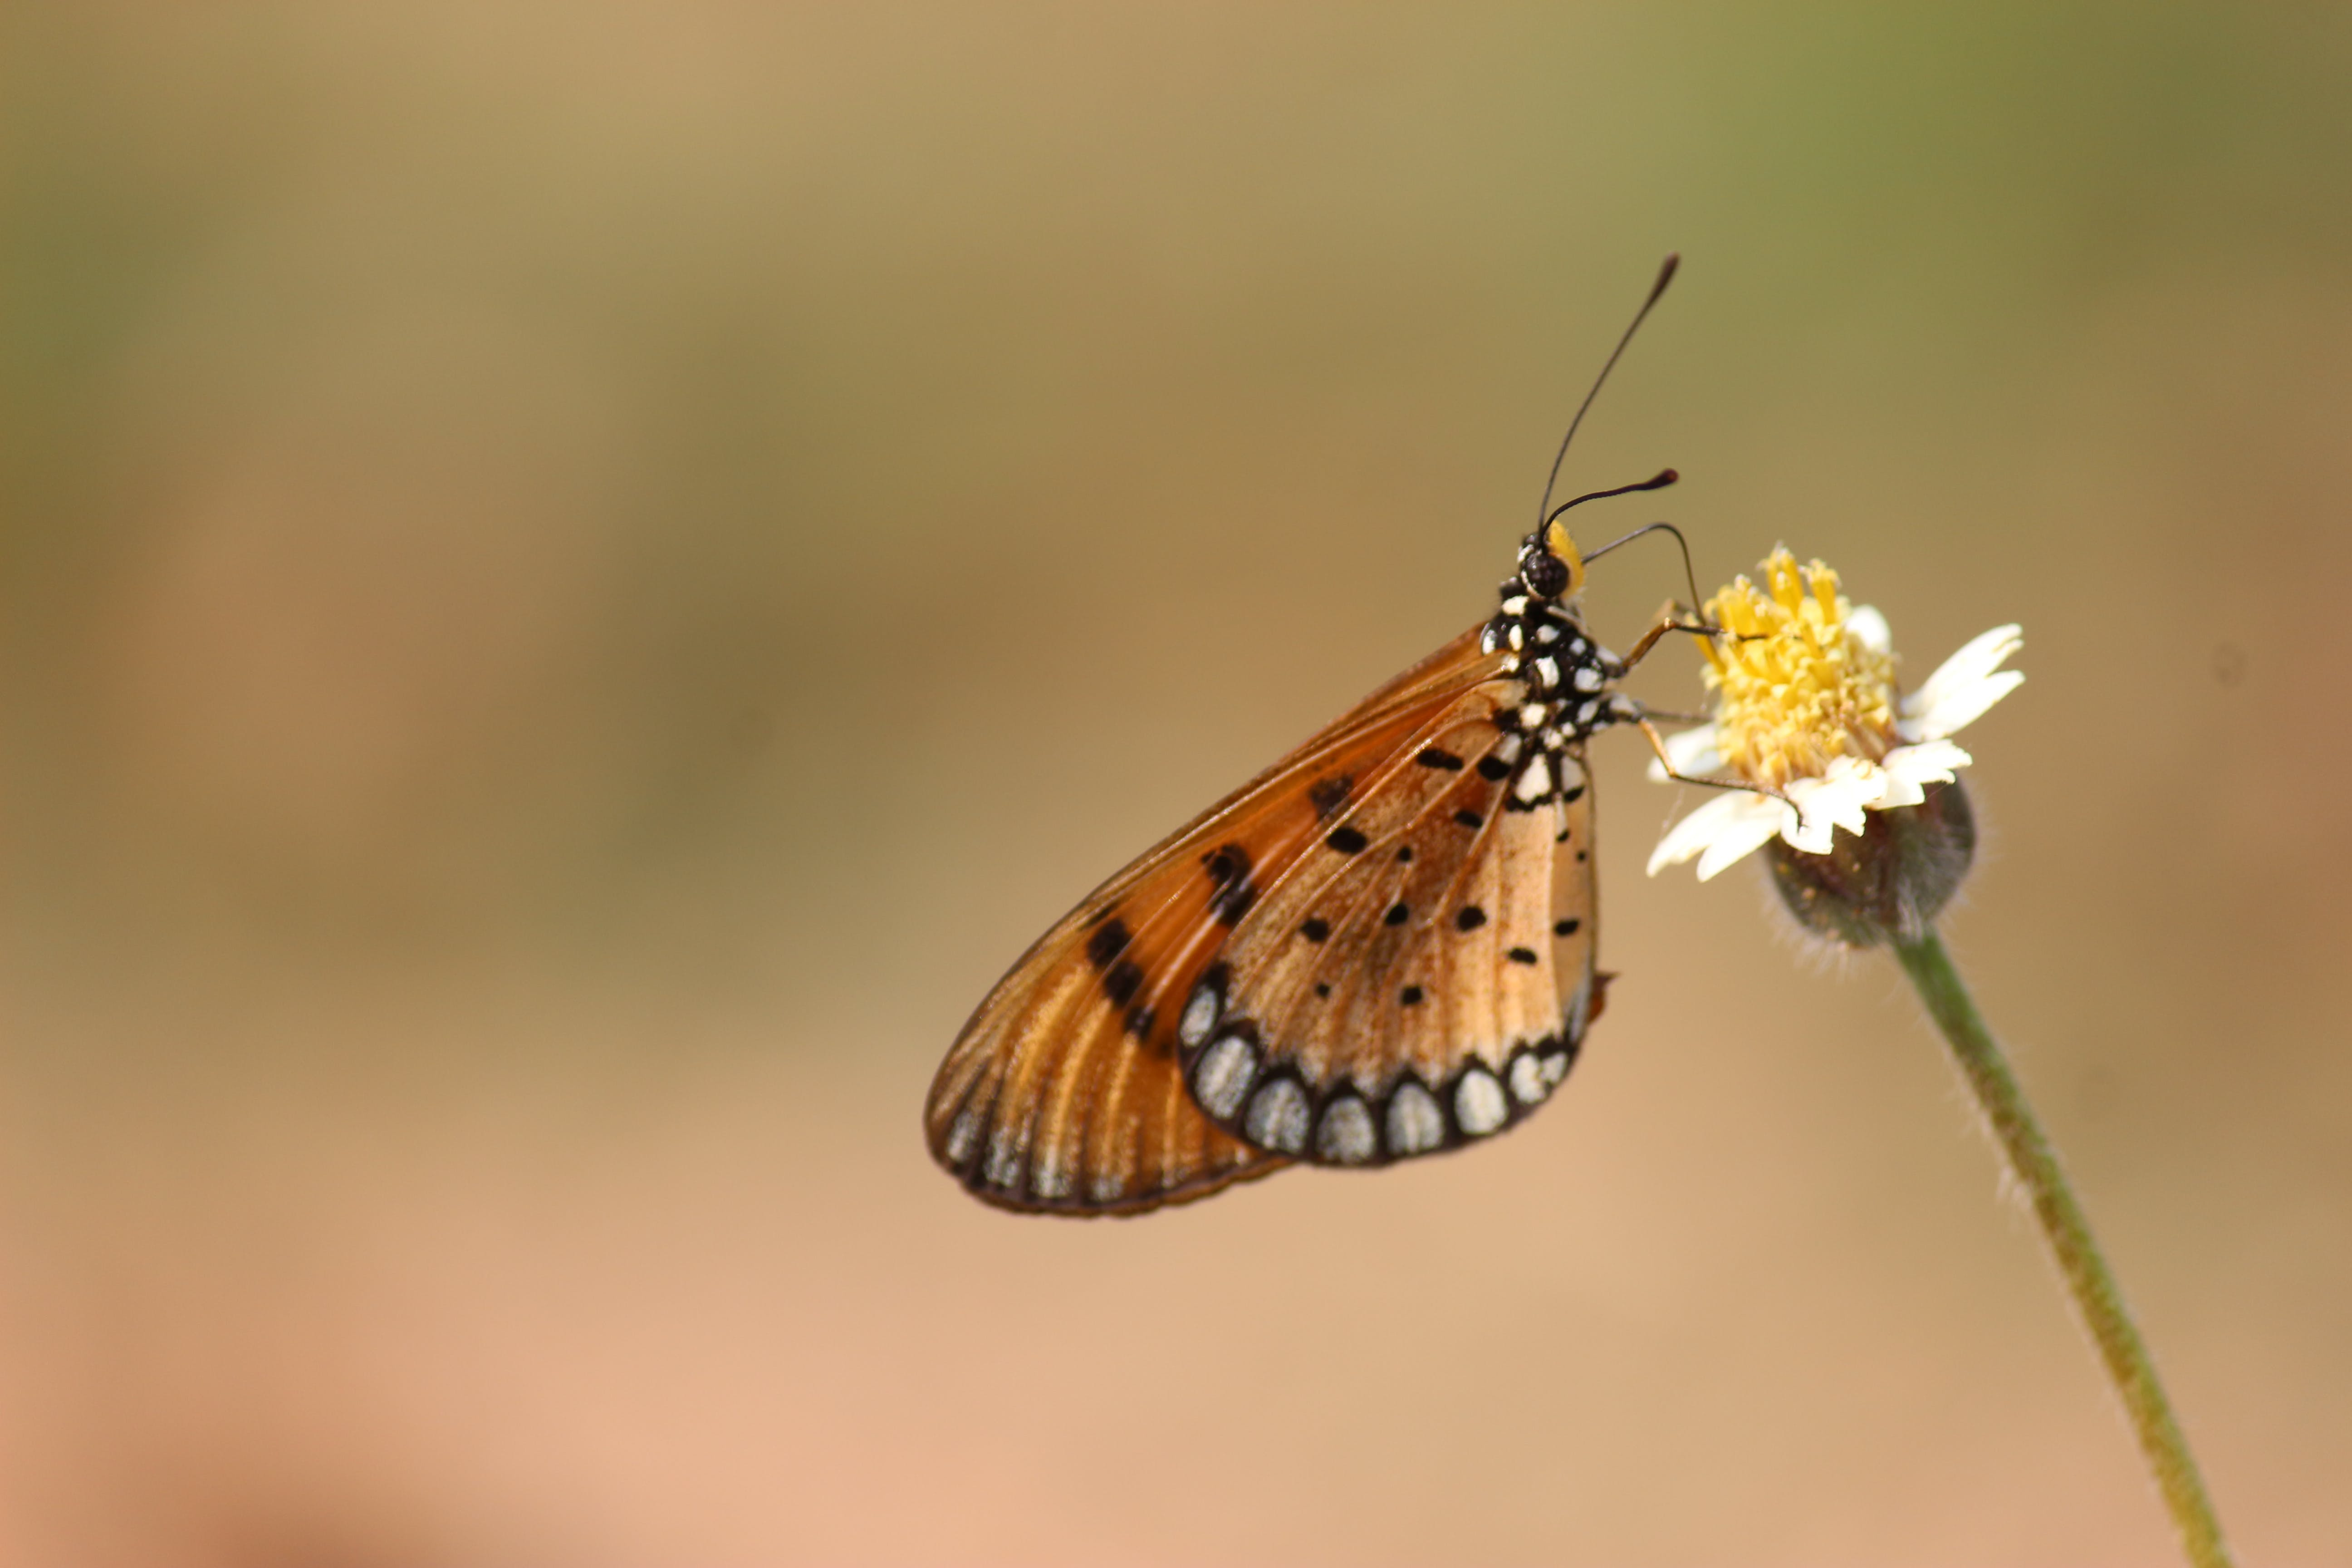 Brown and Black Butterfly on White Petaled Flower